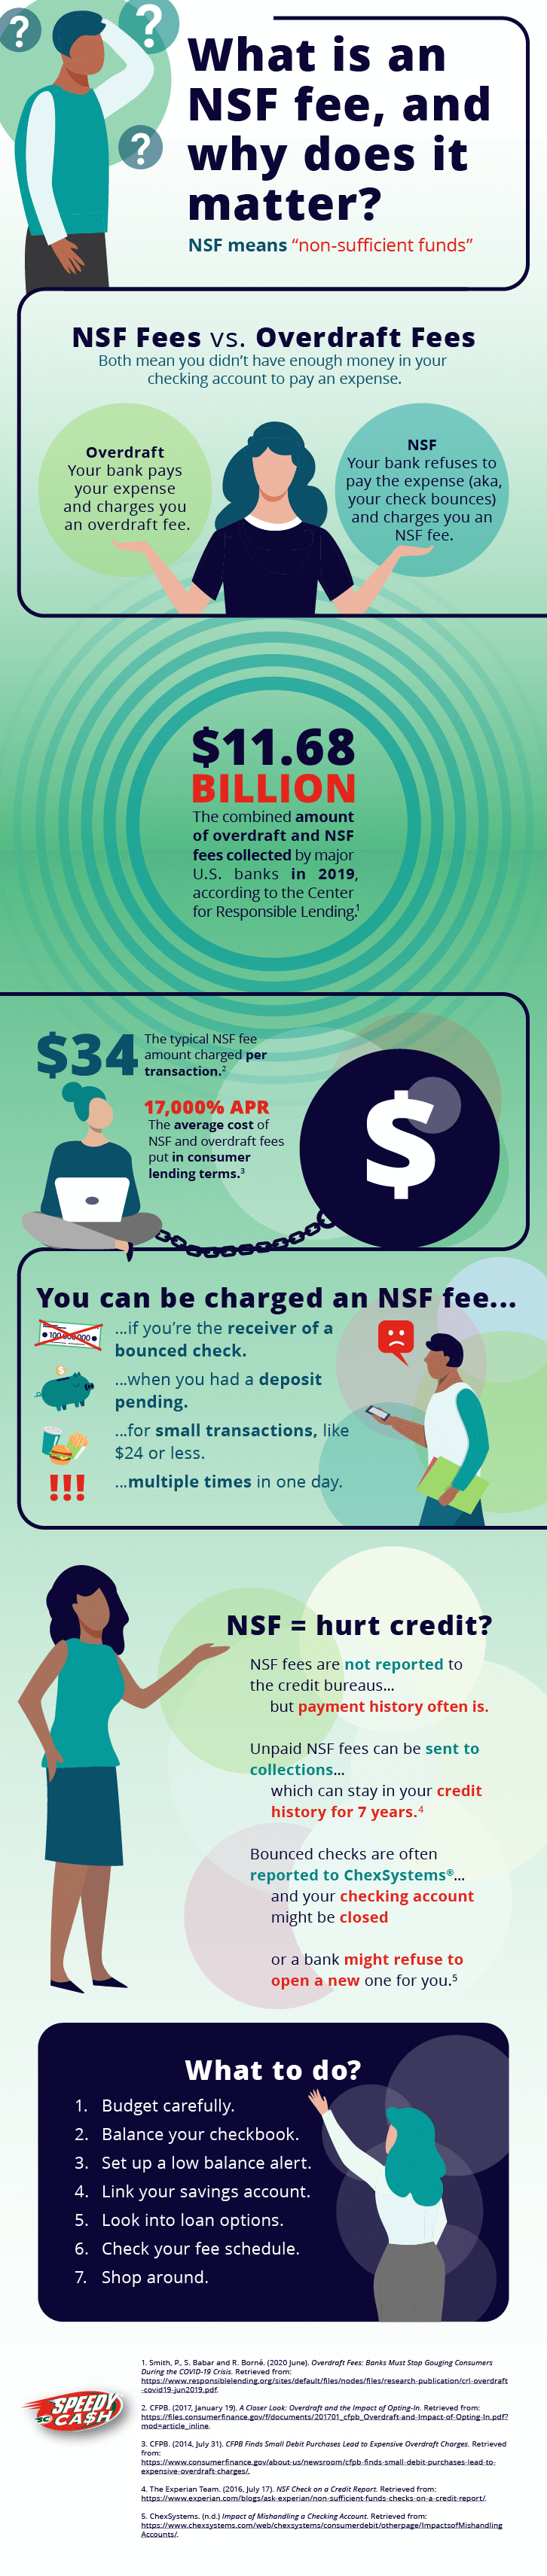 Infographic showing facts about NSF fees and how to avoid them.